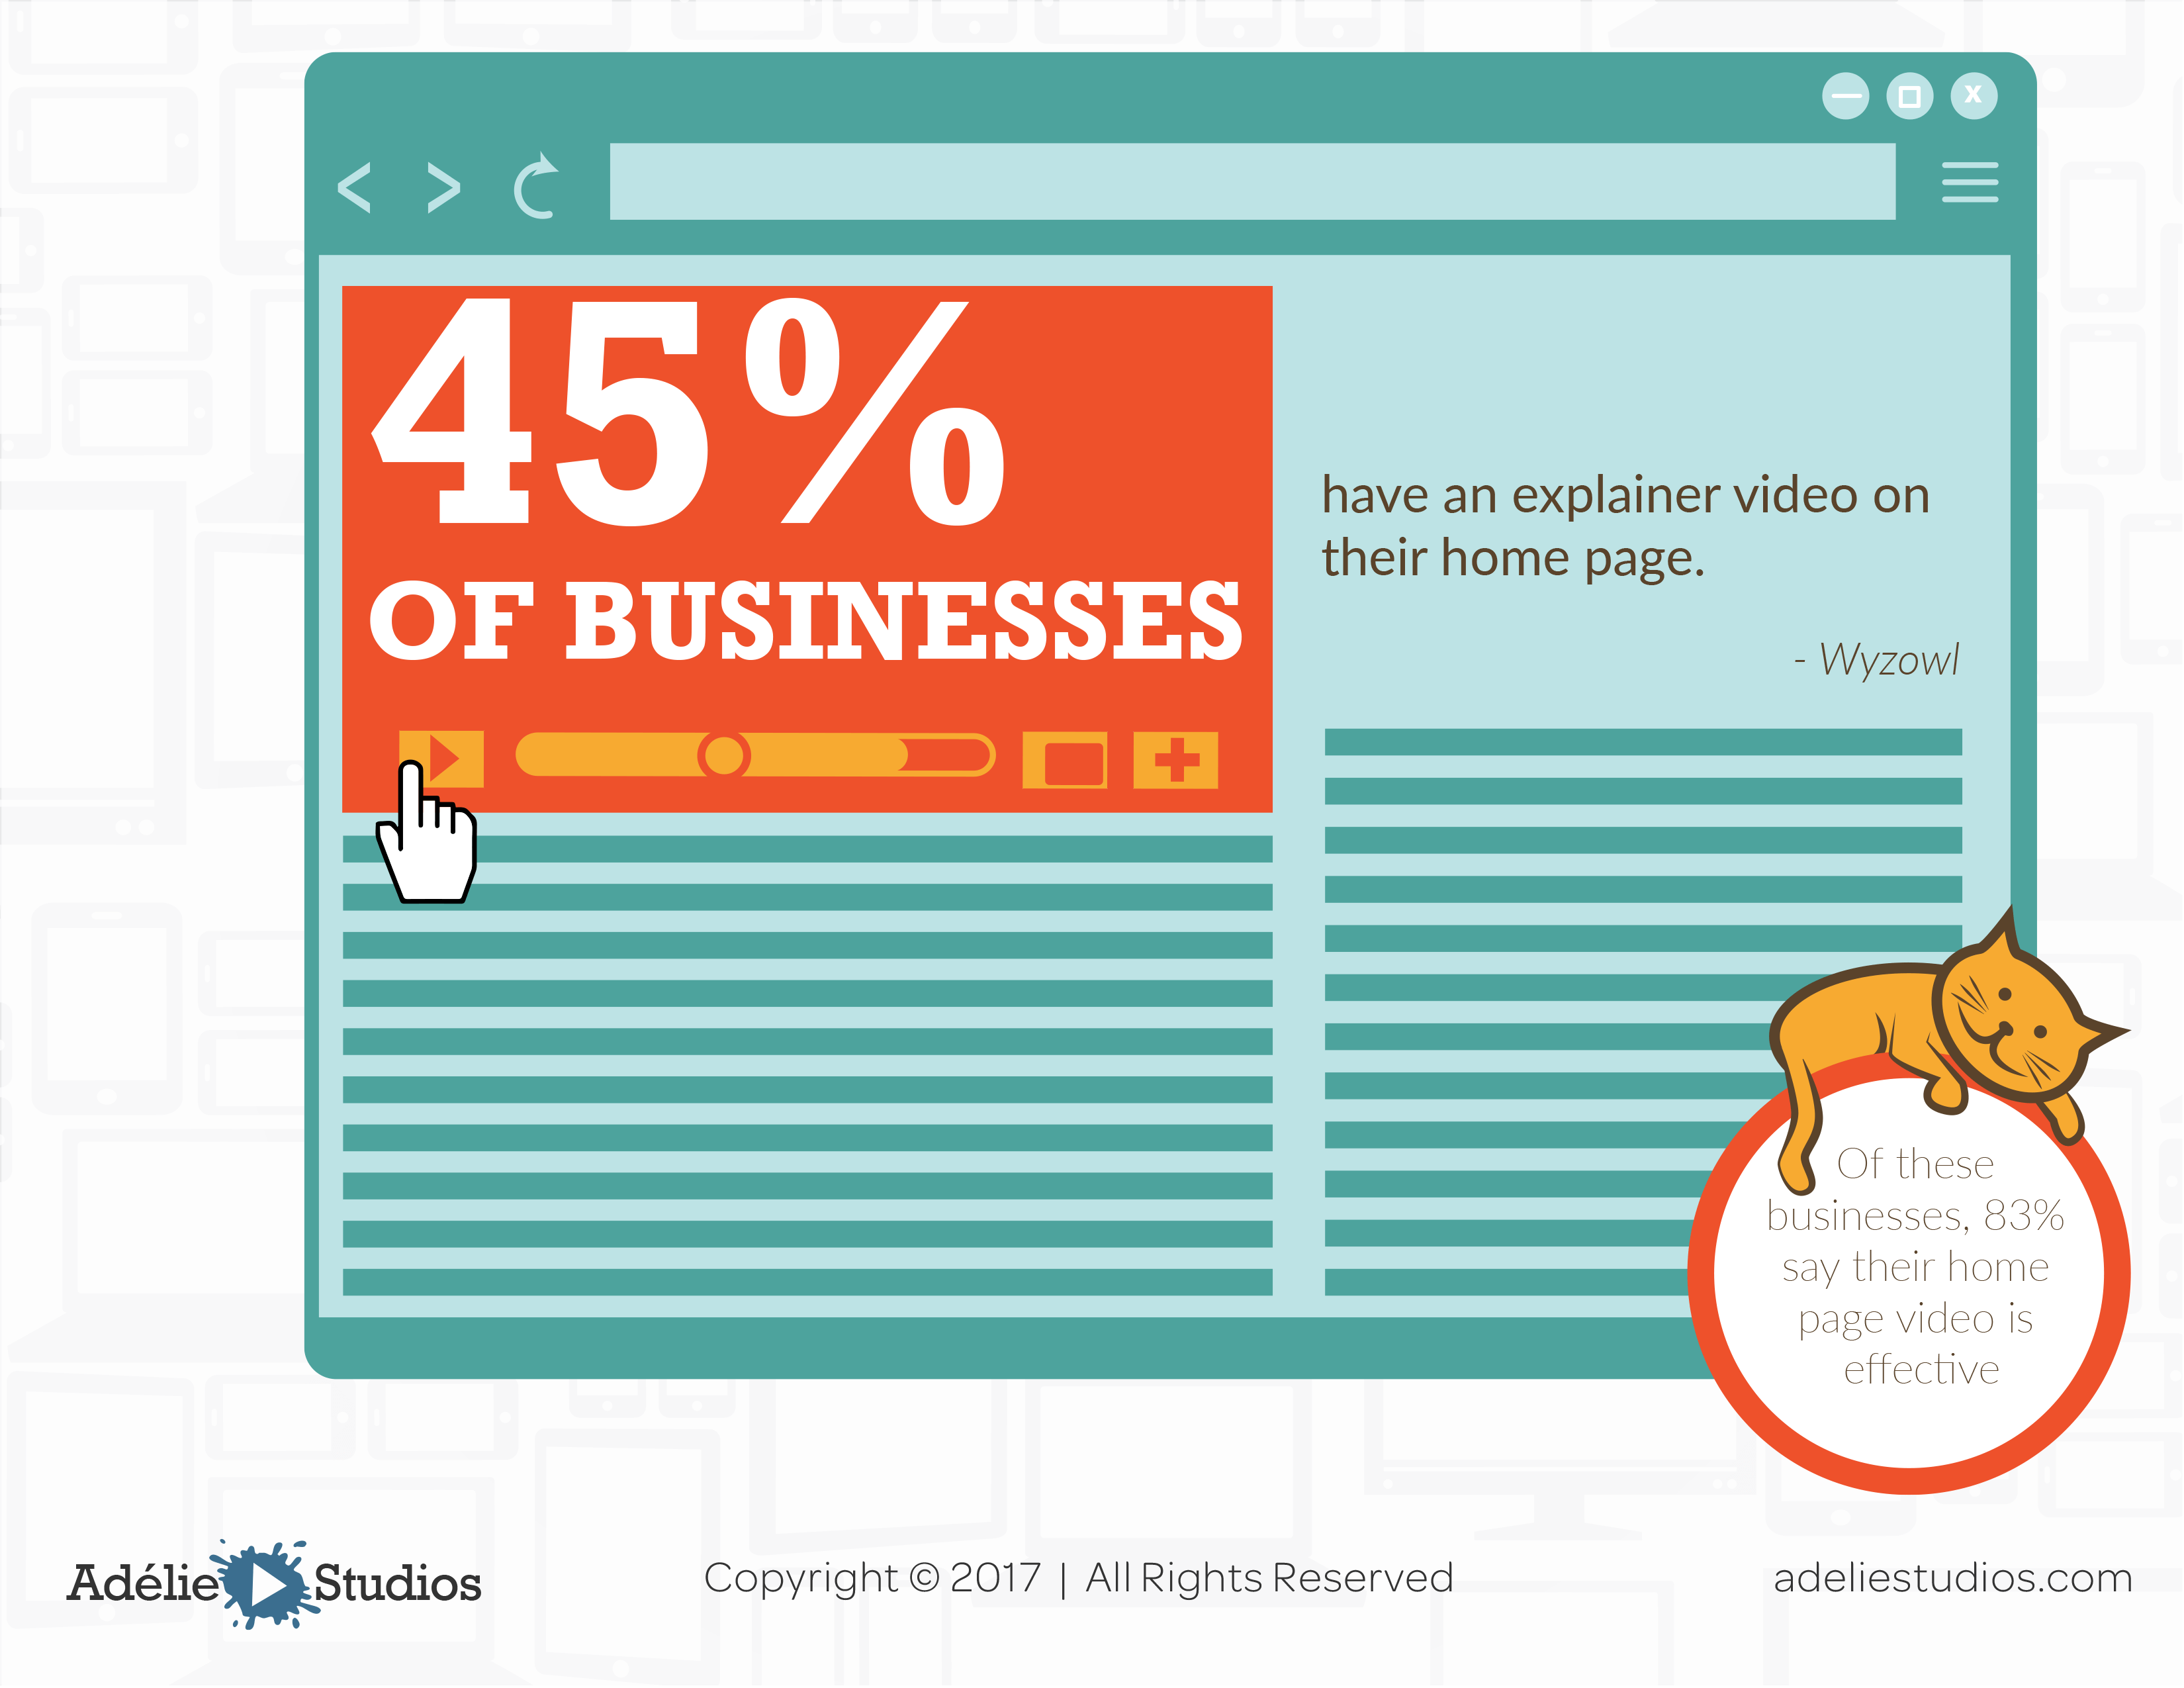 45% of businesses use video